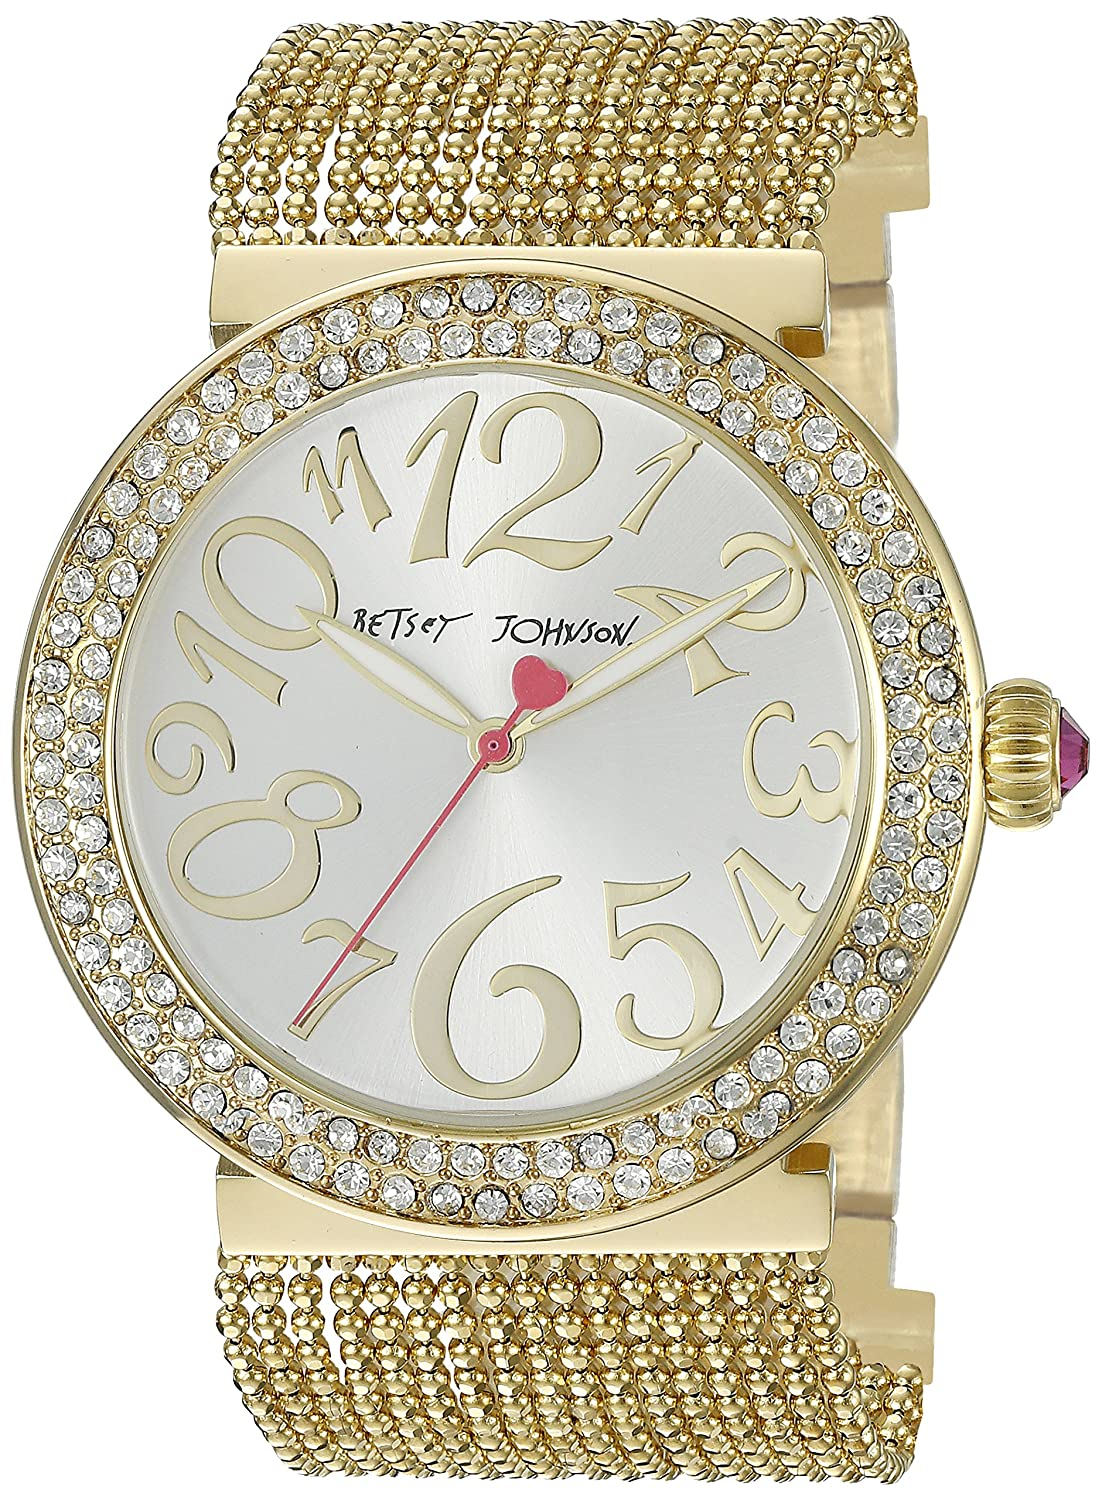 Betsey Johnson Women's BJ00497-02 Analog Display Quartz Gold Watch